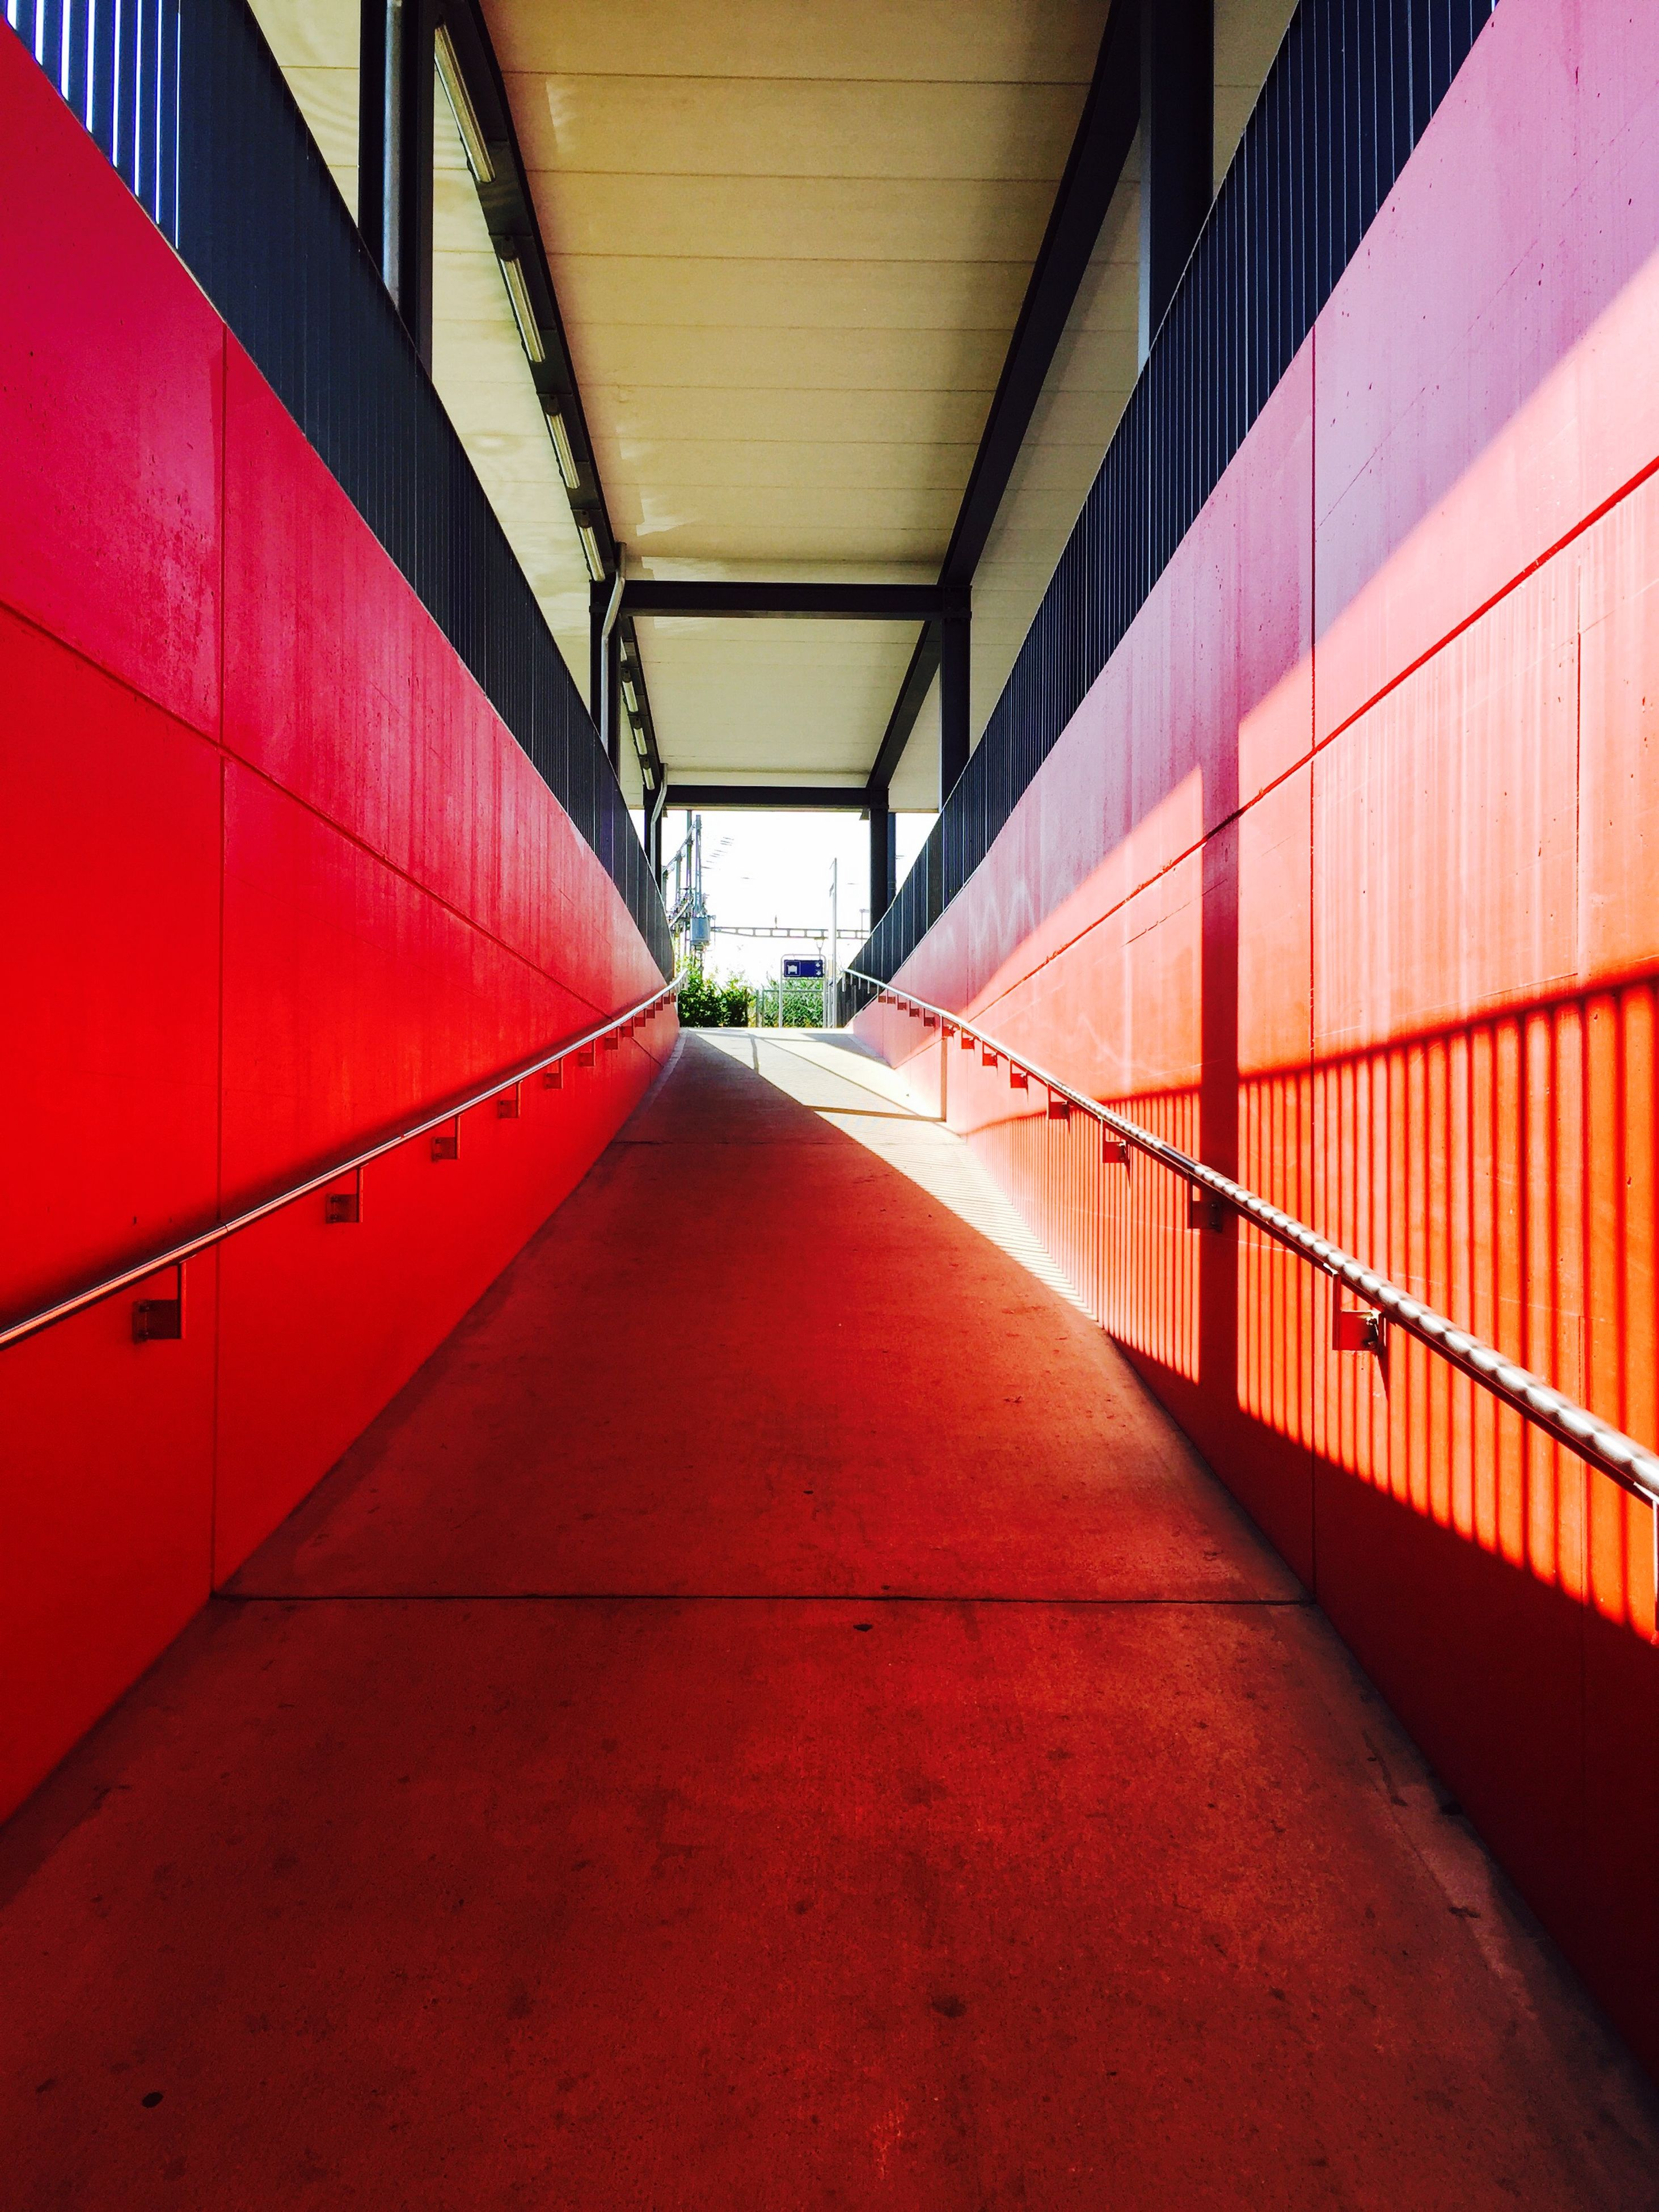 architecture, the way forward, built structure, red, diminishing perspective, empty, indoors, vanishing point, narrow, long, building exterior, wall - building feature, walkway, surface level, railing, corridor, no people, in a row, absence, building